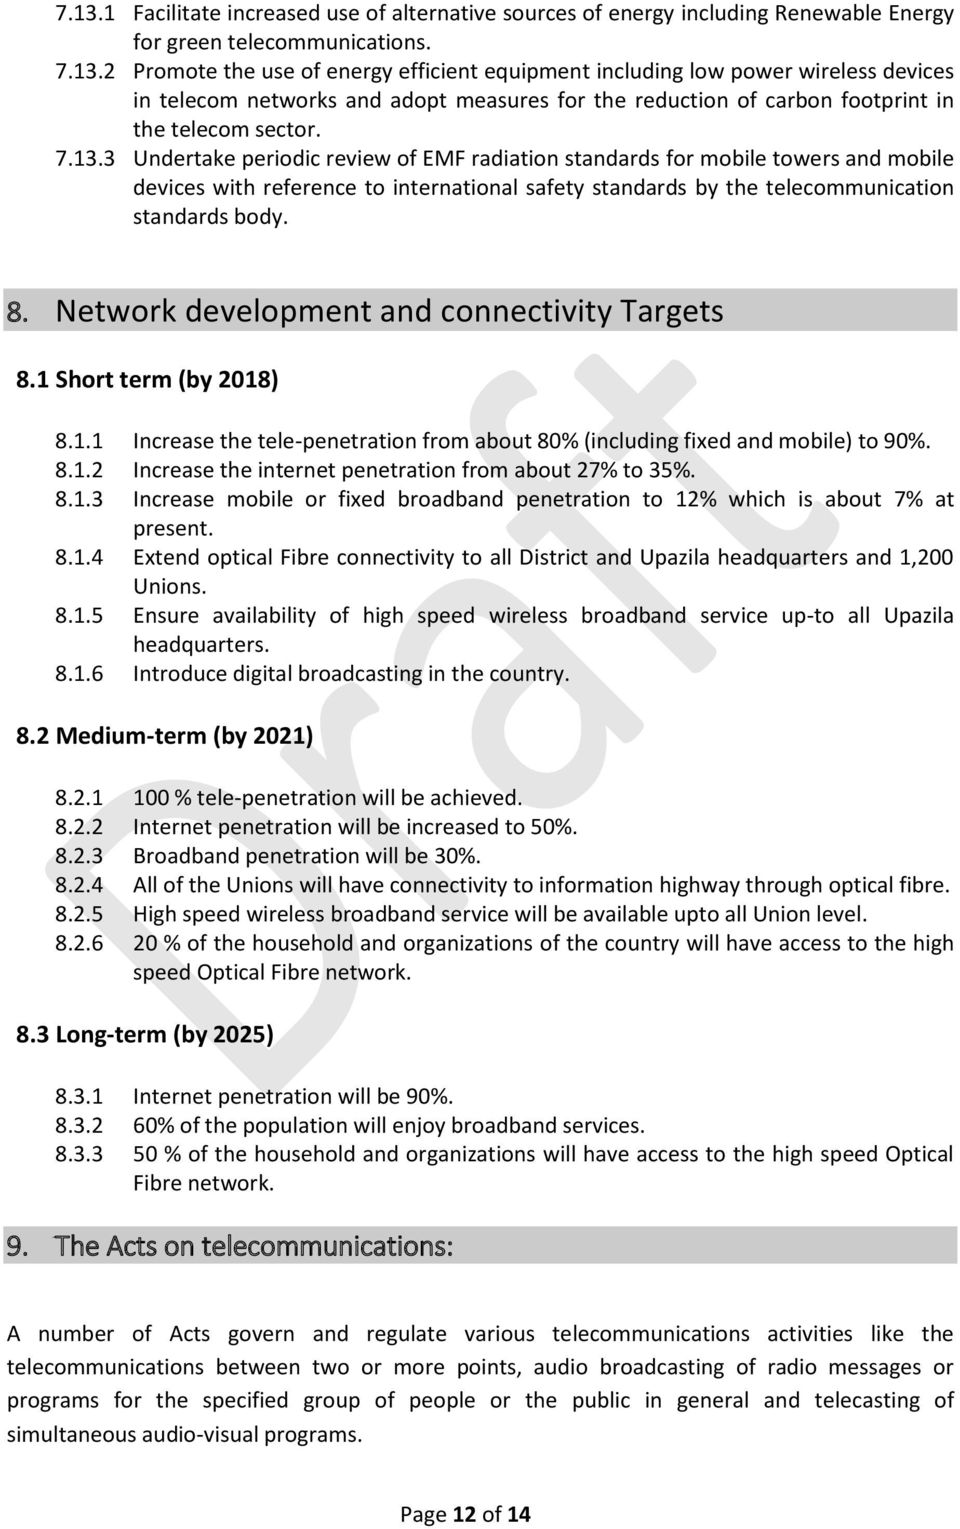 Network development and connectivity Targets 8.1 Short term (by 2018) 8.1.1 Increase the tele-penetration from about 80% (including fixed and mobile) to 90%. 8.1.2 Increase the internet penetration from about 27% to 35%.